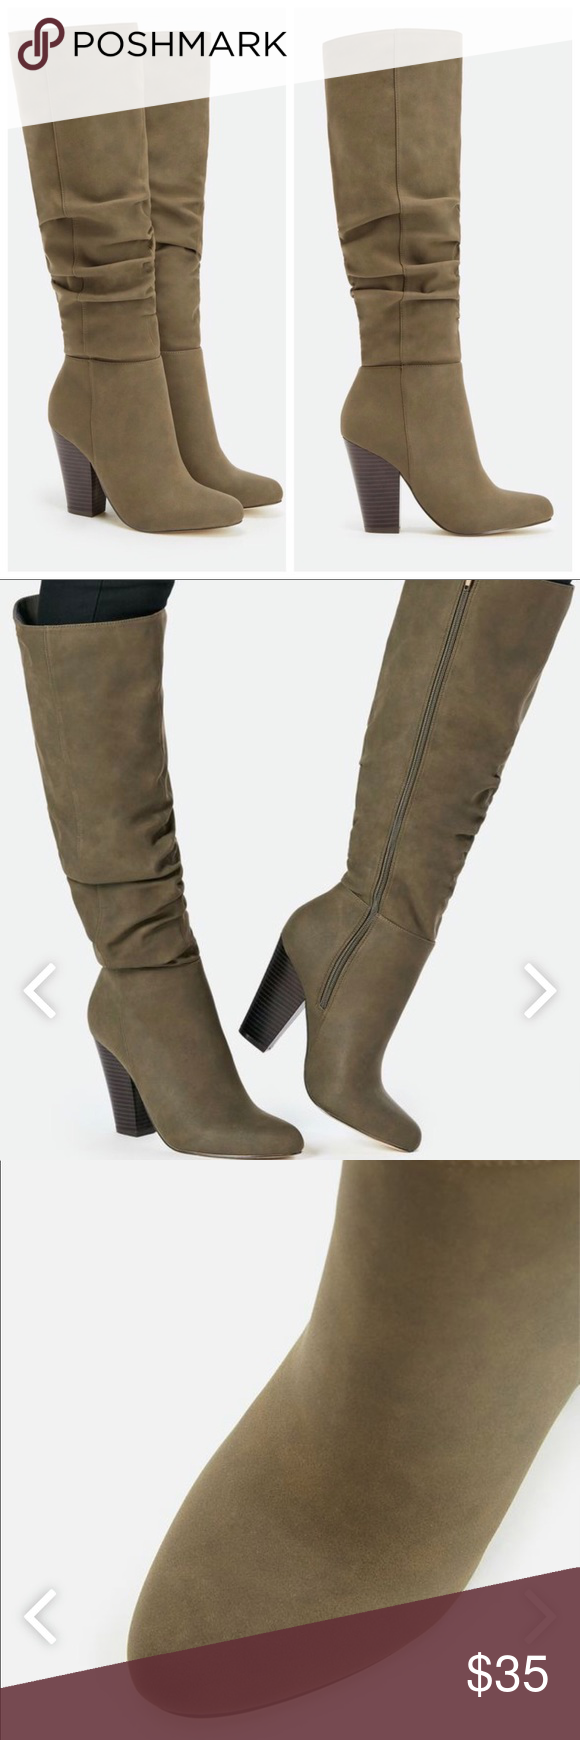 51adc152c65 Just fab karlana wide calf knee boots in posh picks png 580x1740 Justfab  wide calf boots